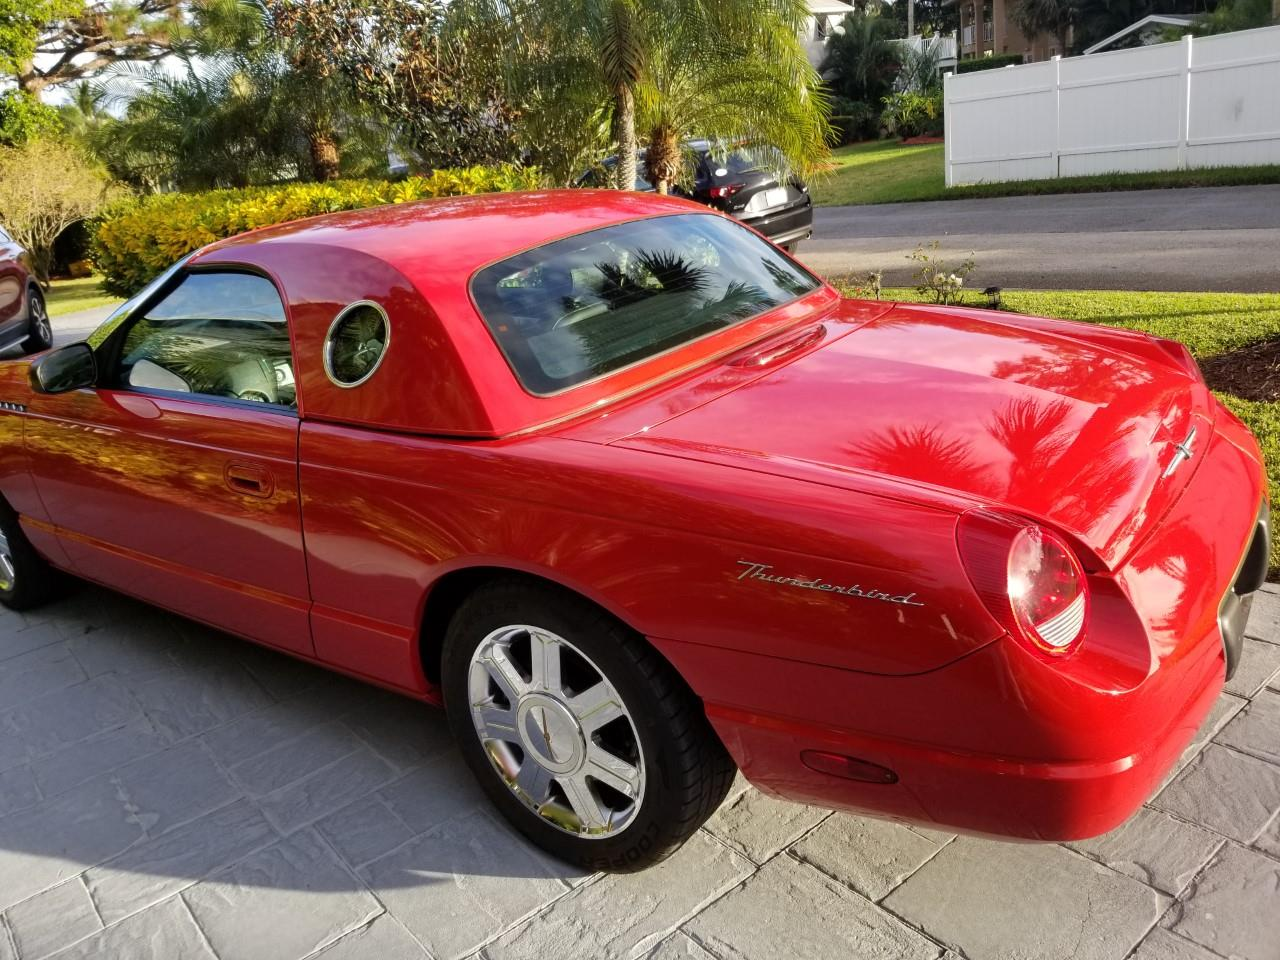 2004 Ford Thunderbird for sale in Lake Park, FL – photo 9